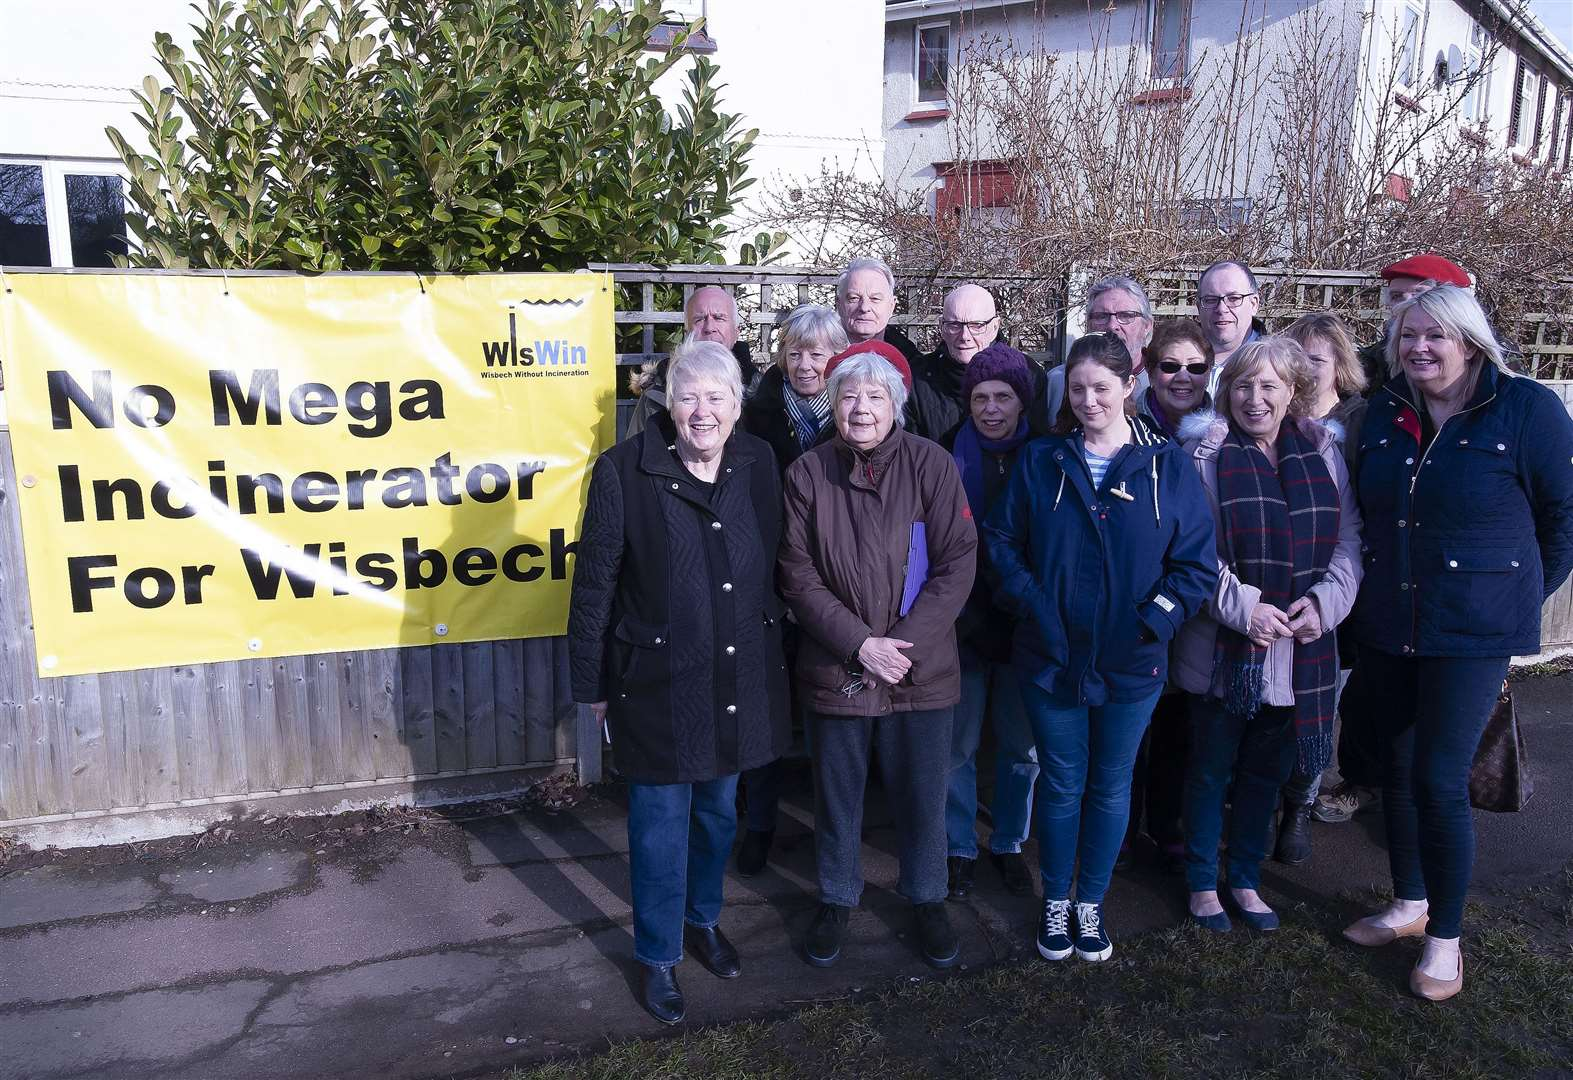 Rallying cry for protest against Wisbech incinerator this Sunday